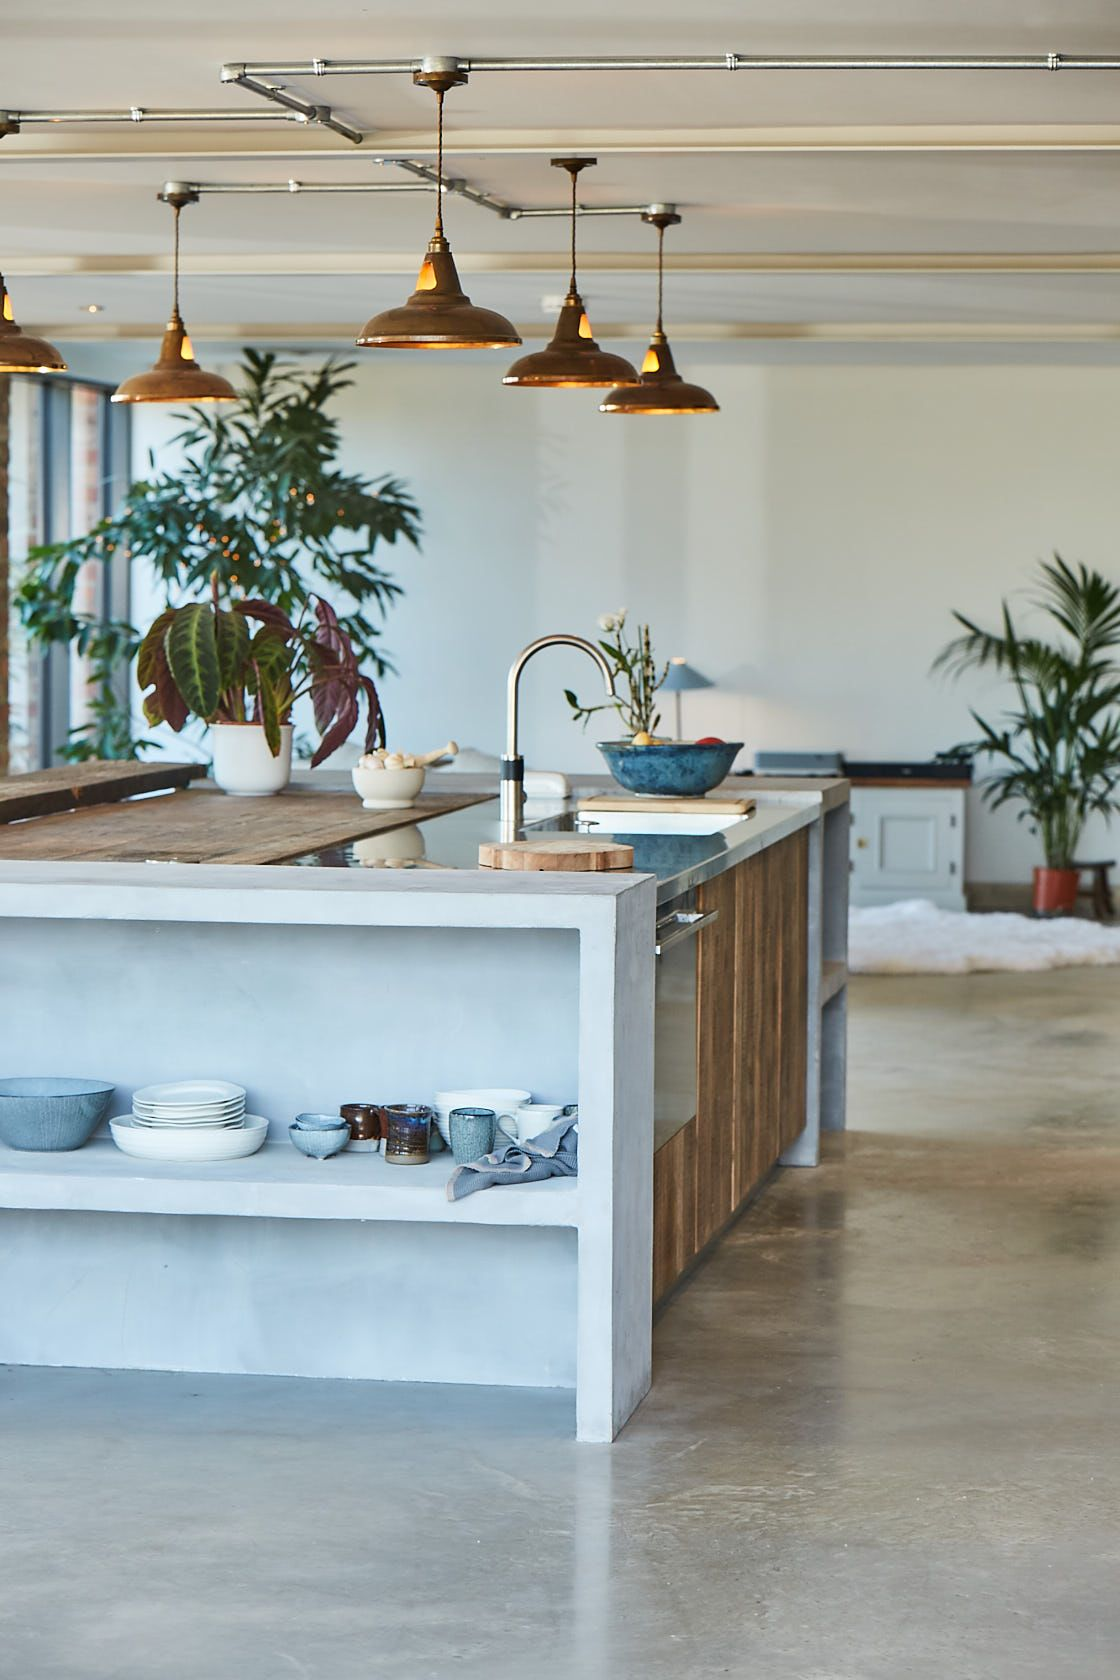 Cattal Street Kitchen - The Main Company | Different Types of Dream ...